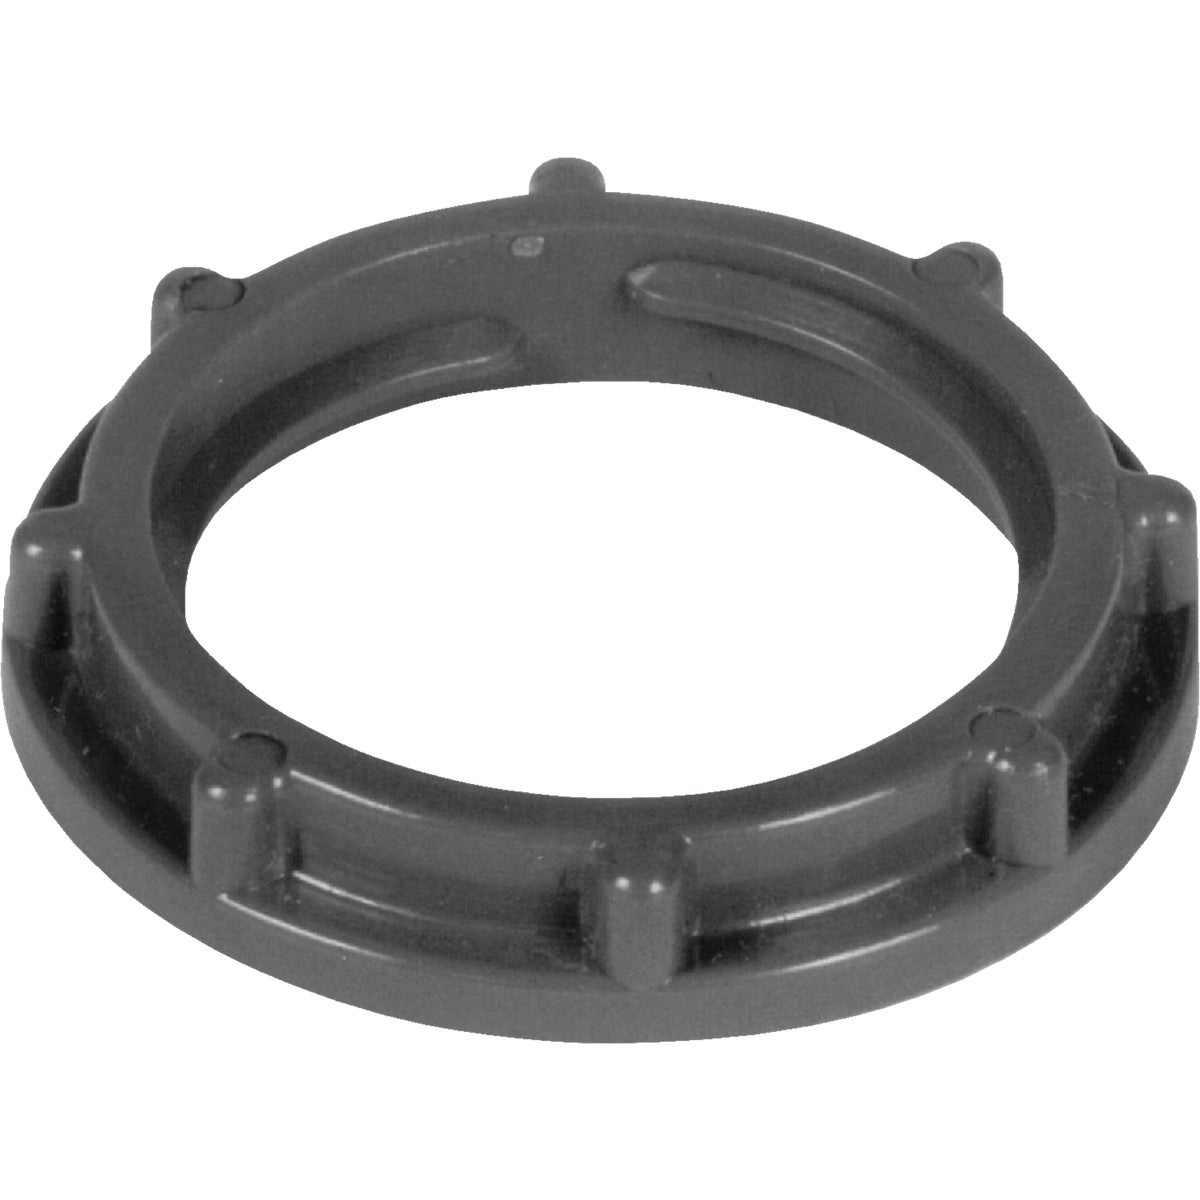 "3/4"" PVC LOCKNUT - LT9LER by Thomas & Betts"